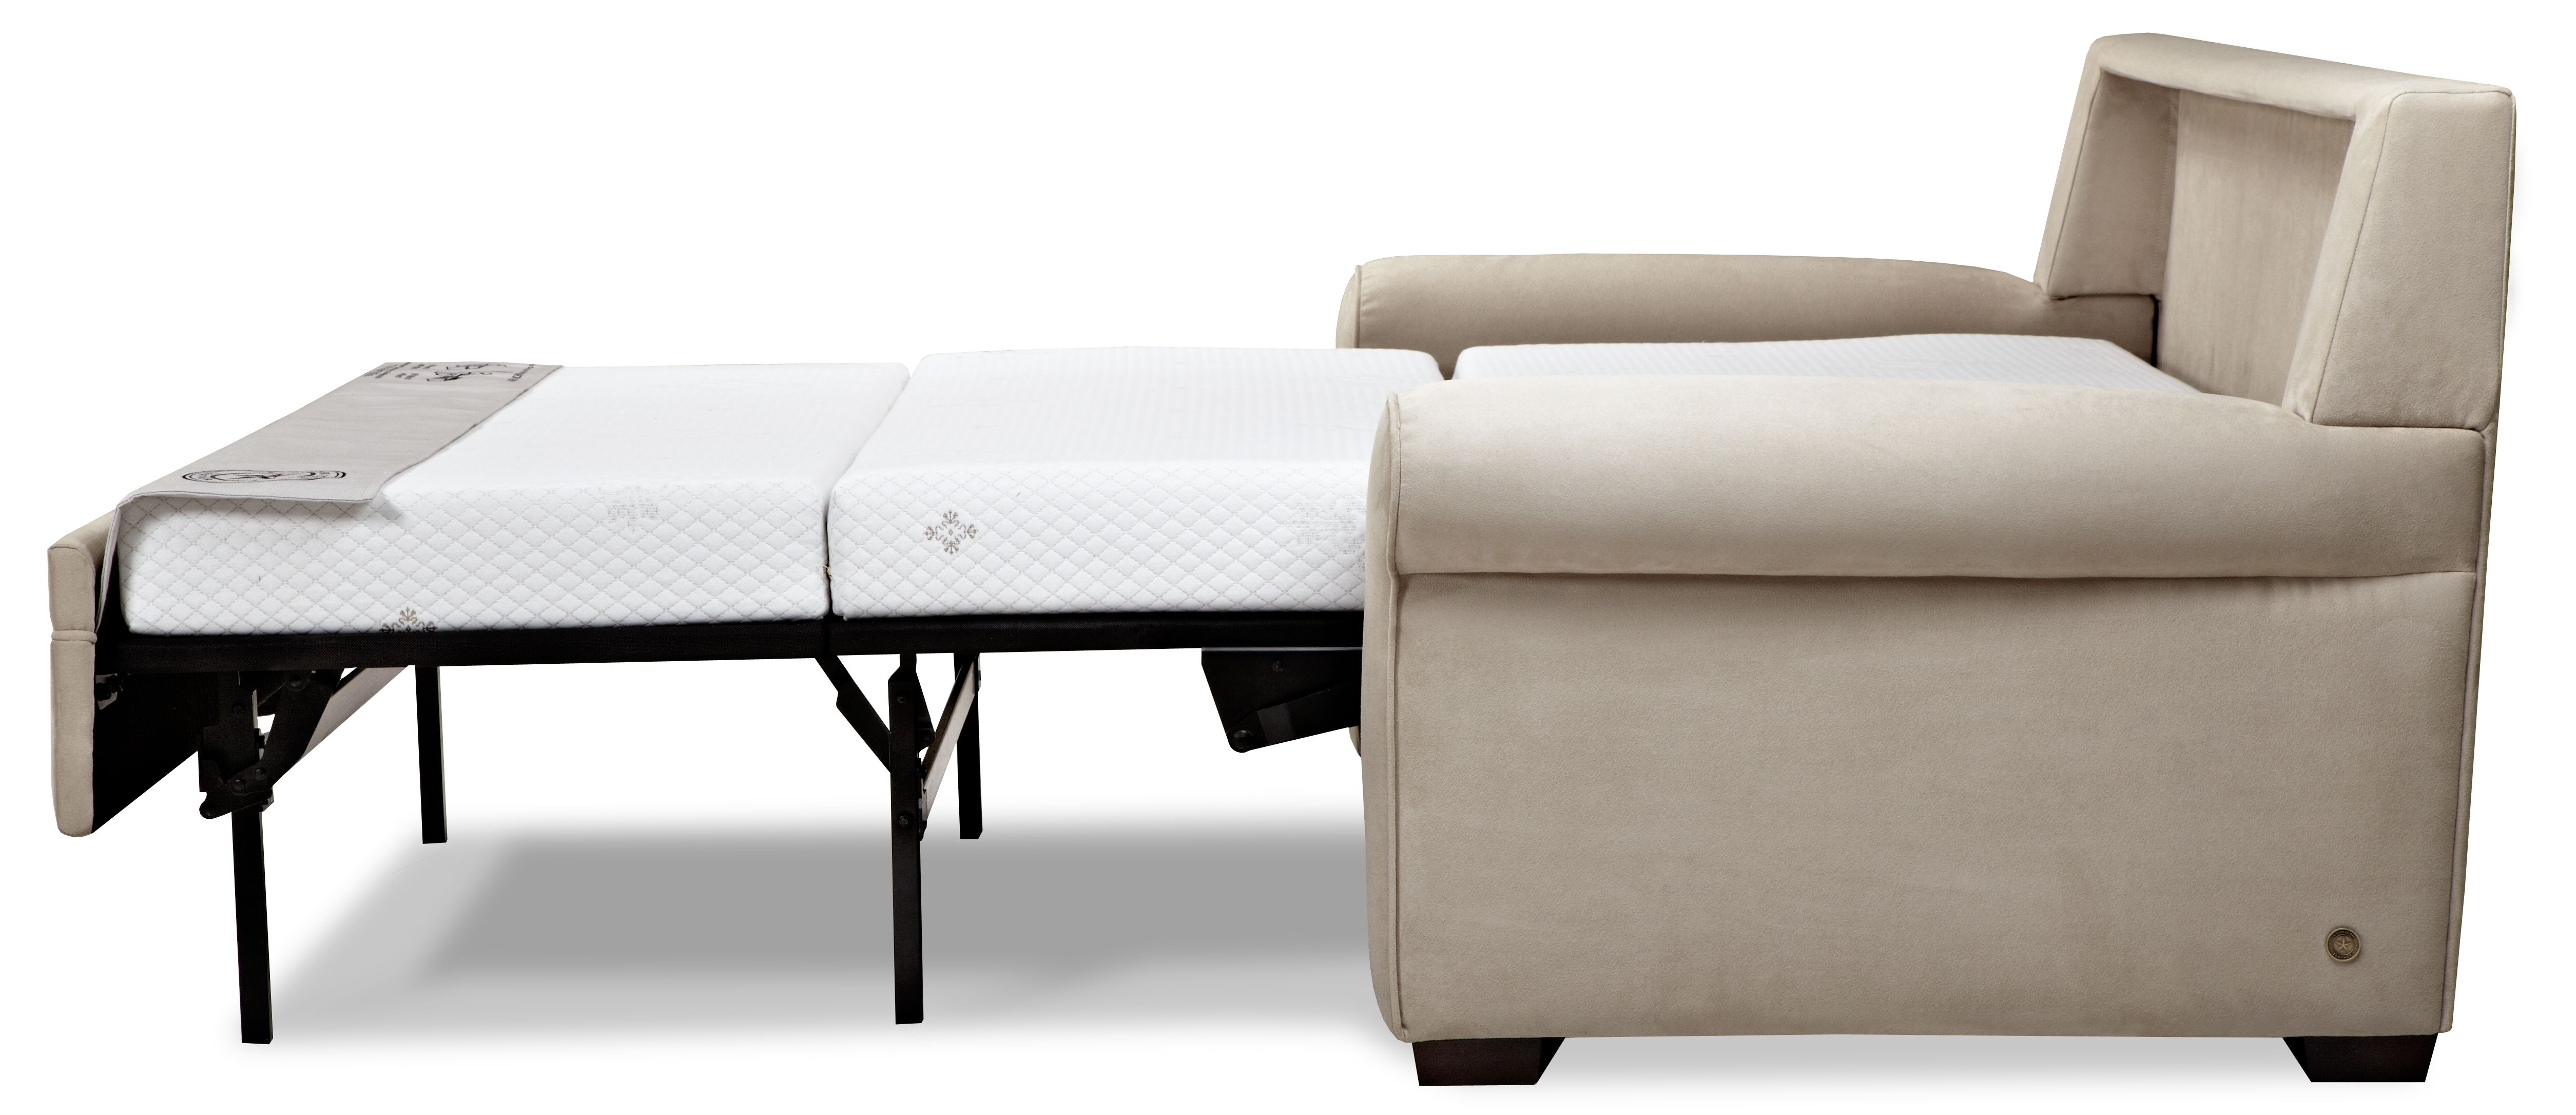 American Leather Full Size Sleeper Sofa Possessing An Italian Symbolizes Sophistication Exclusivity And Fun